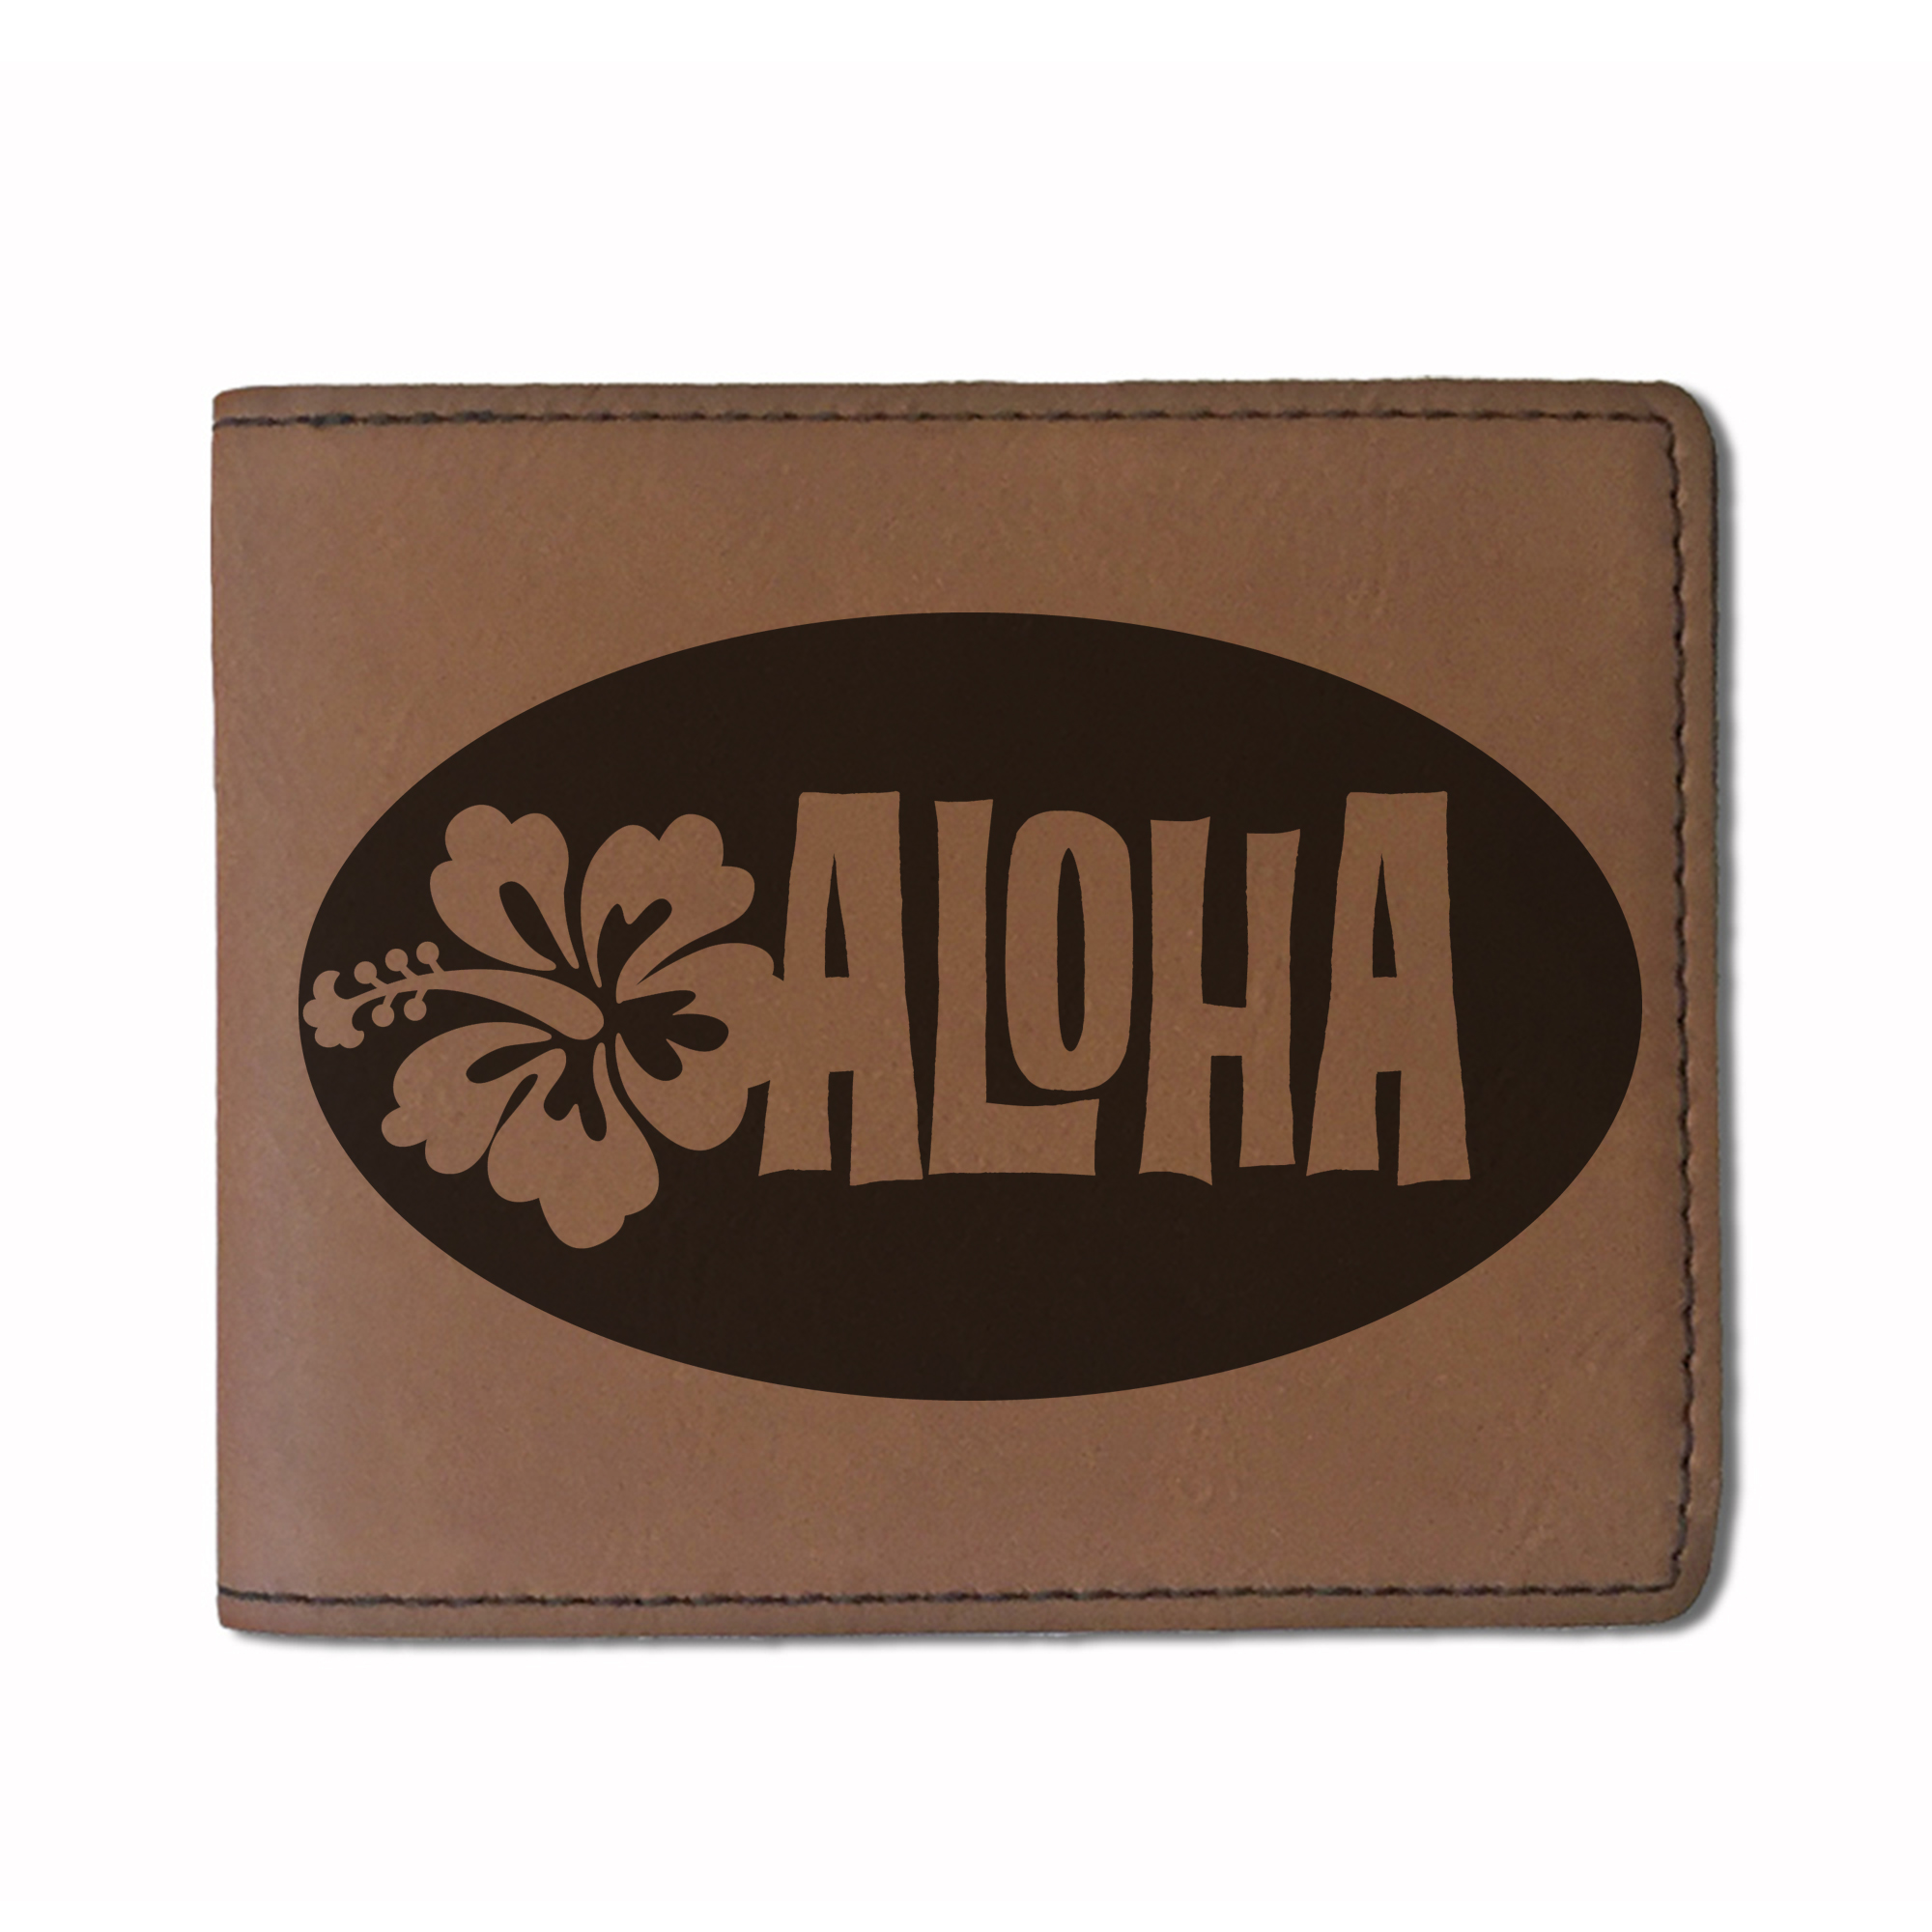 Faux Leather Wallet - Aloha - Personalized Engraving Included